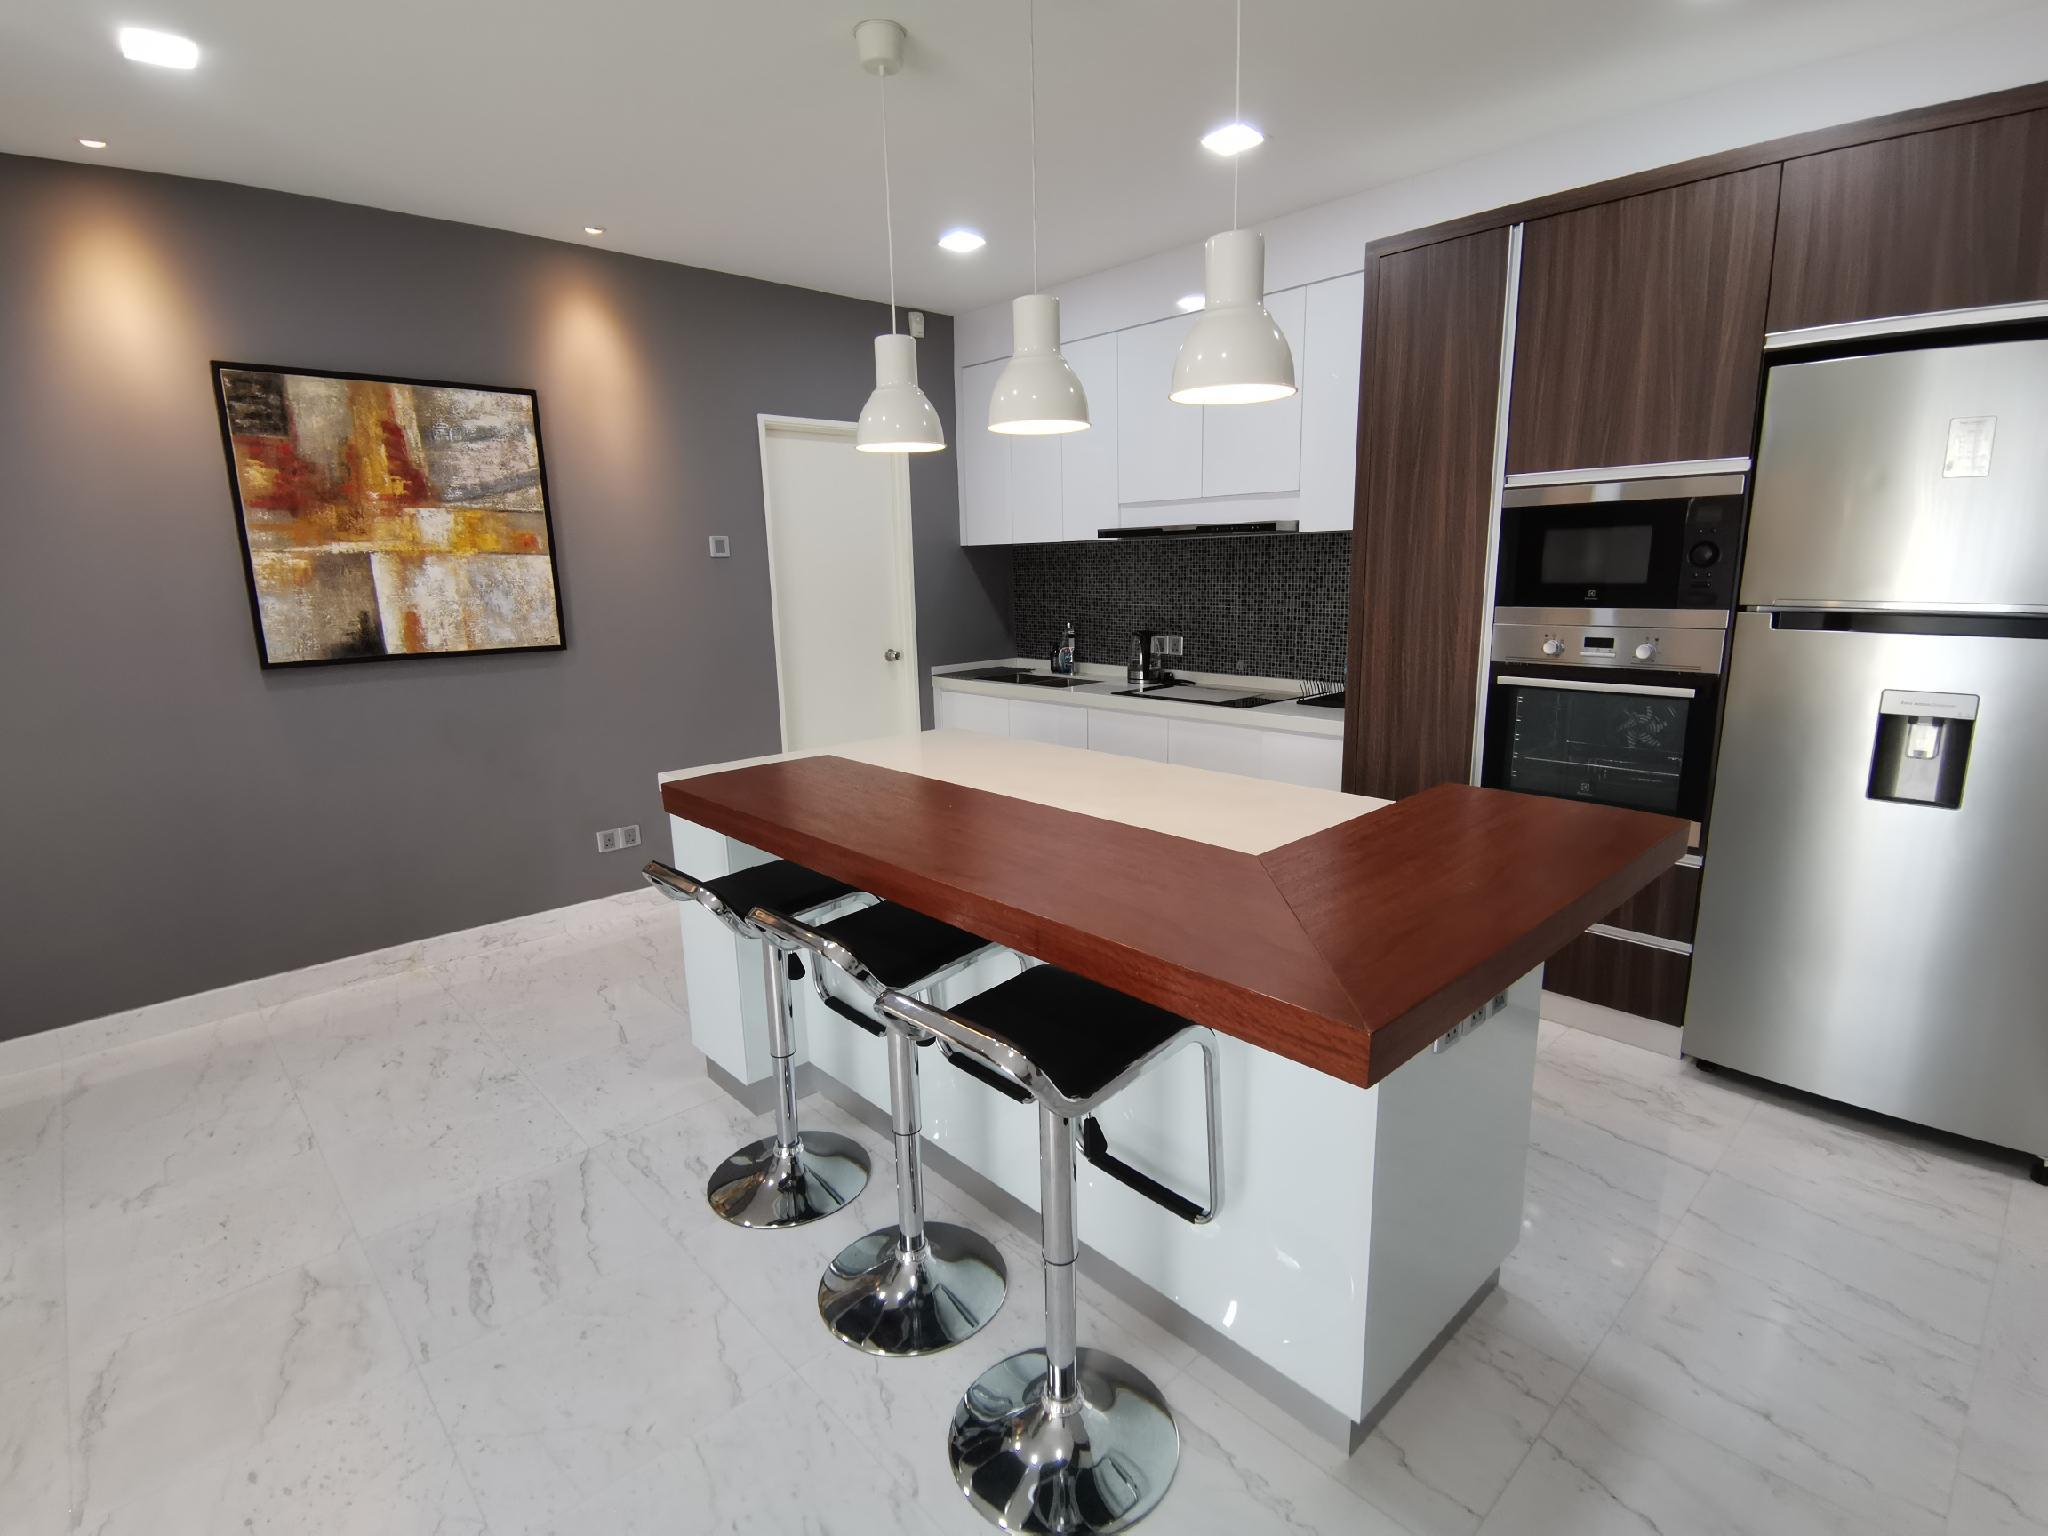 Kroma@57 A Modern And Homely Suite With Pool And Gym